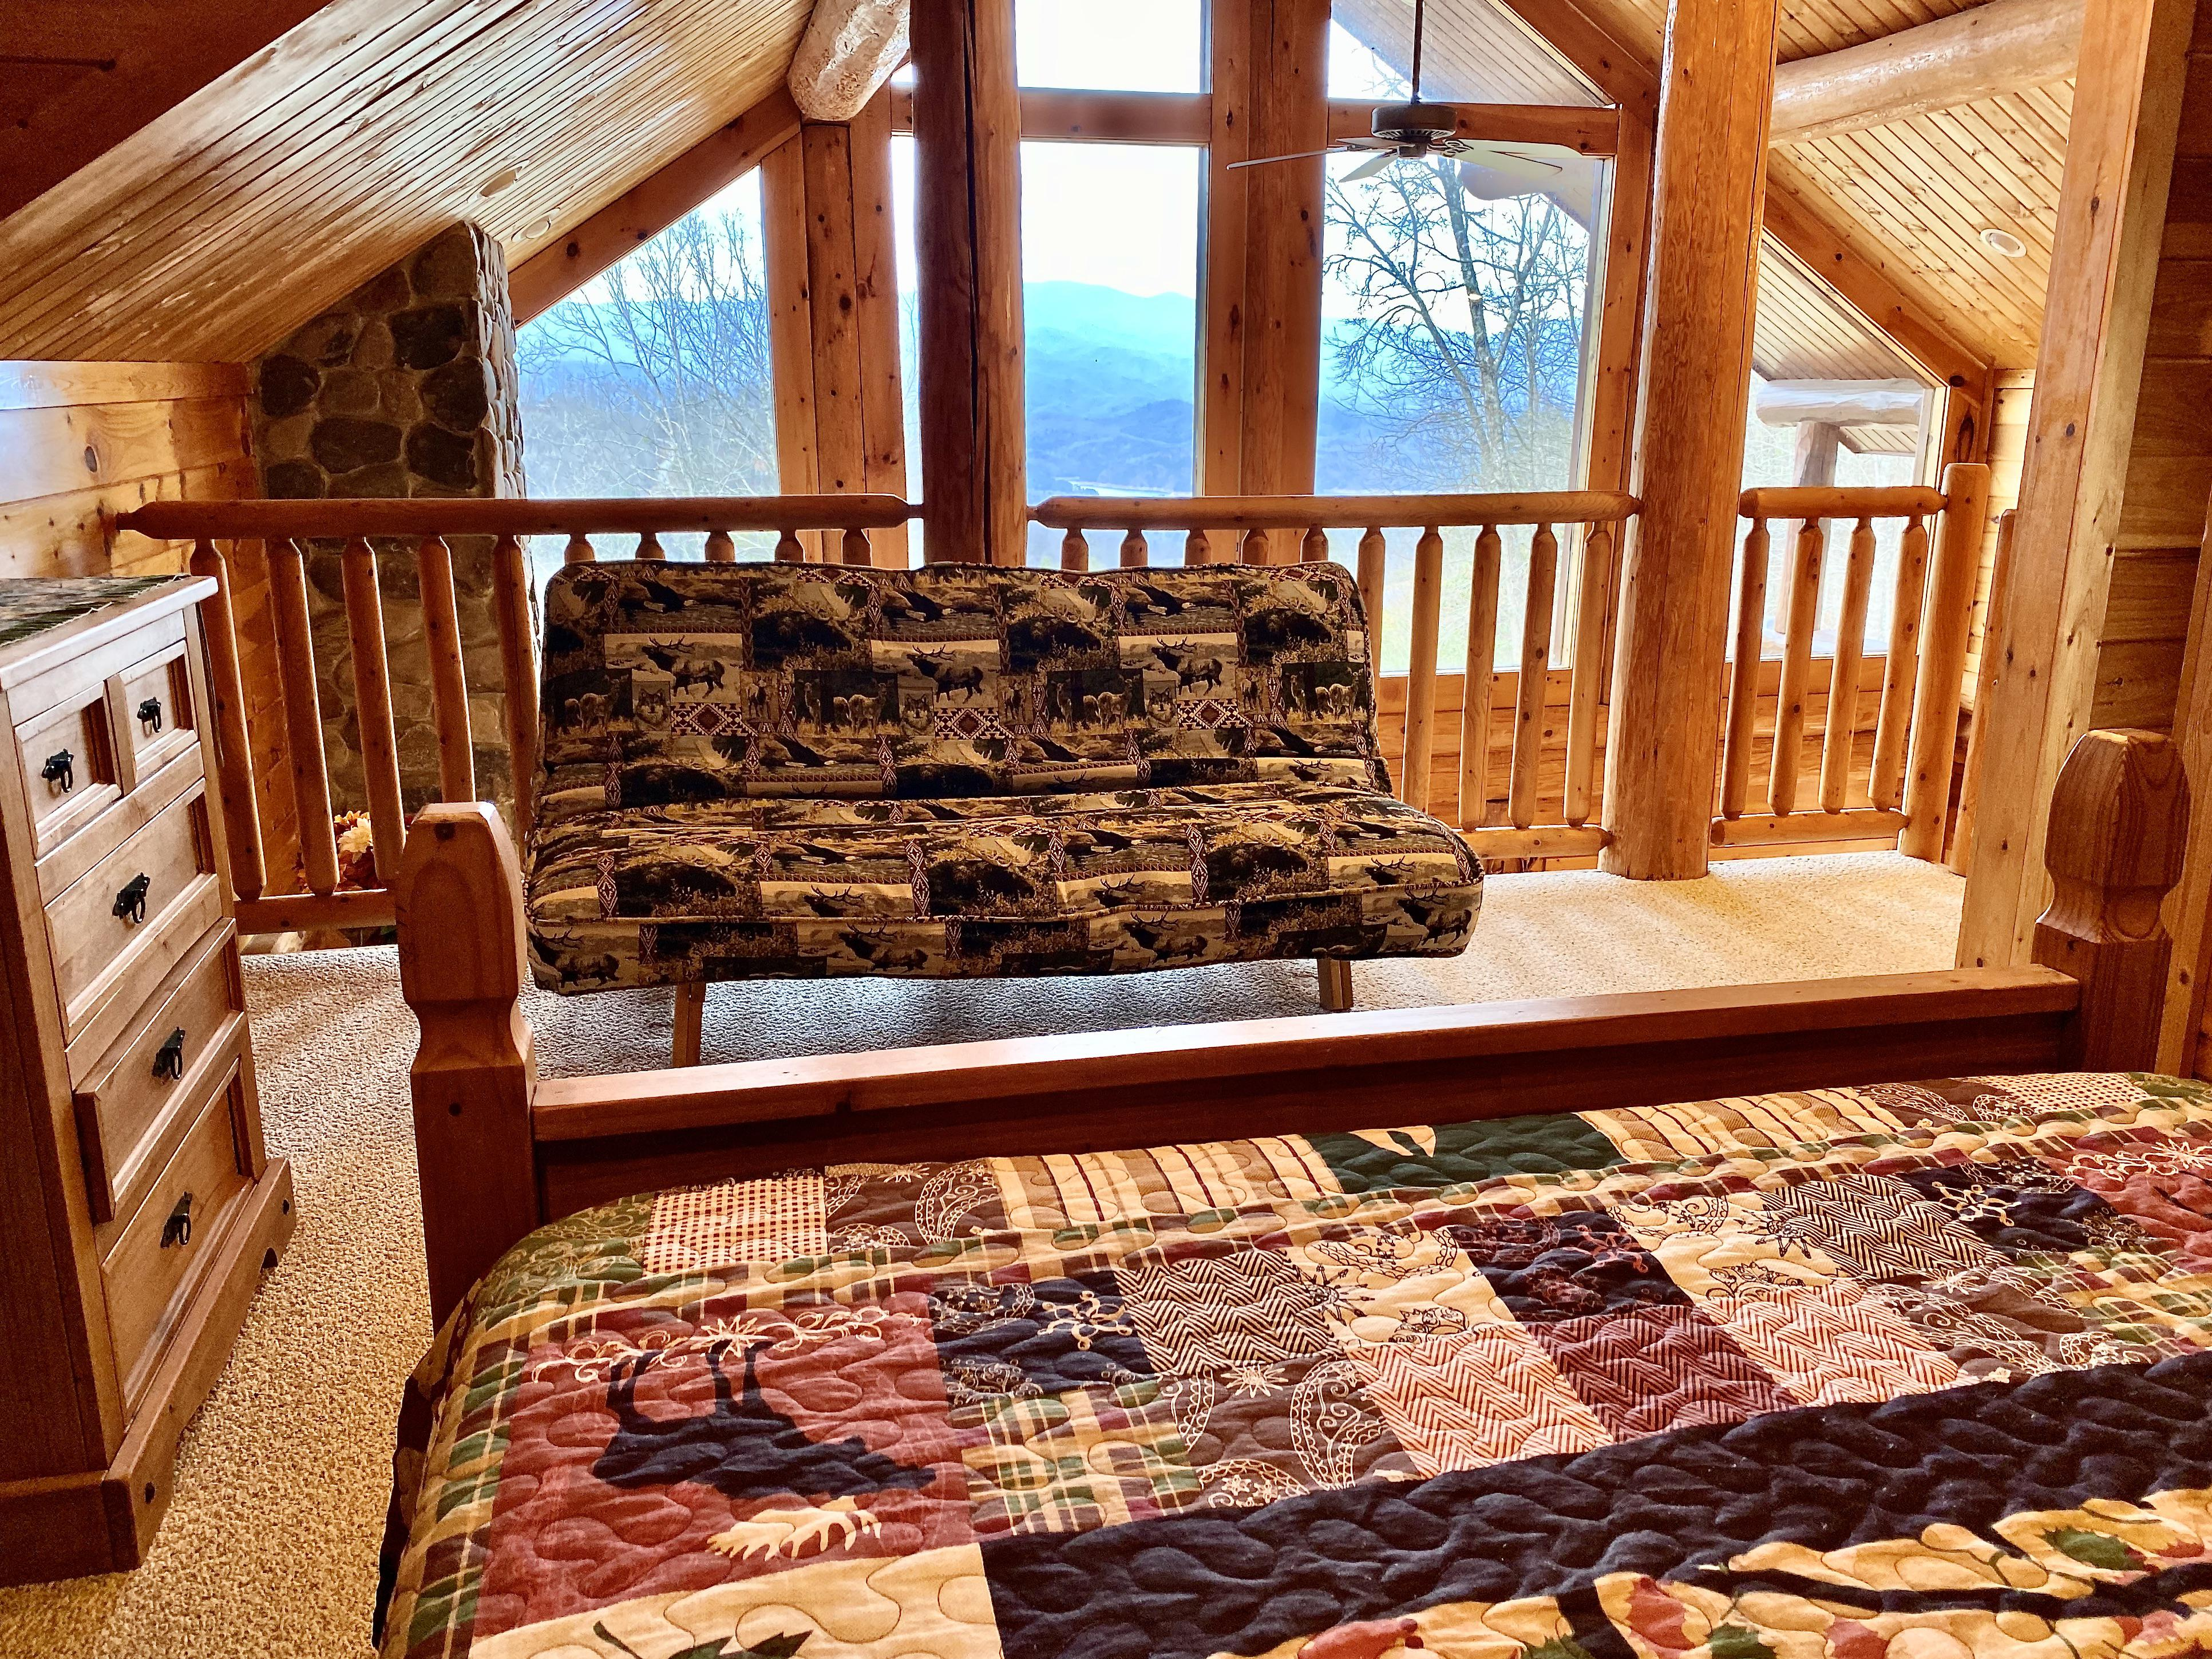 The Loft offers a Futon for additional Guests